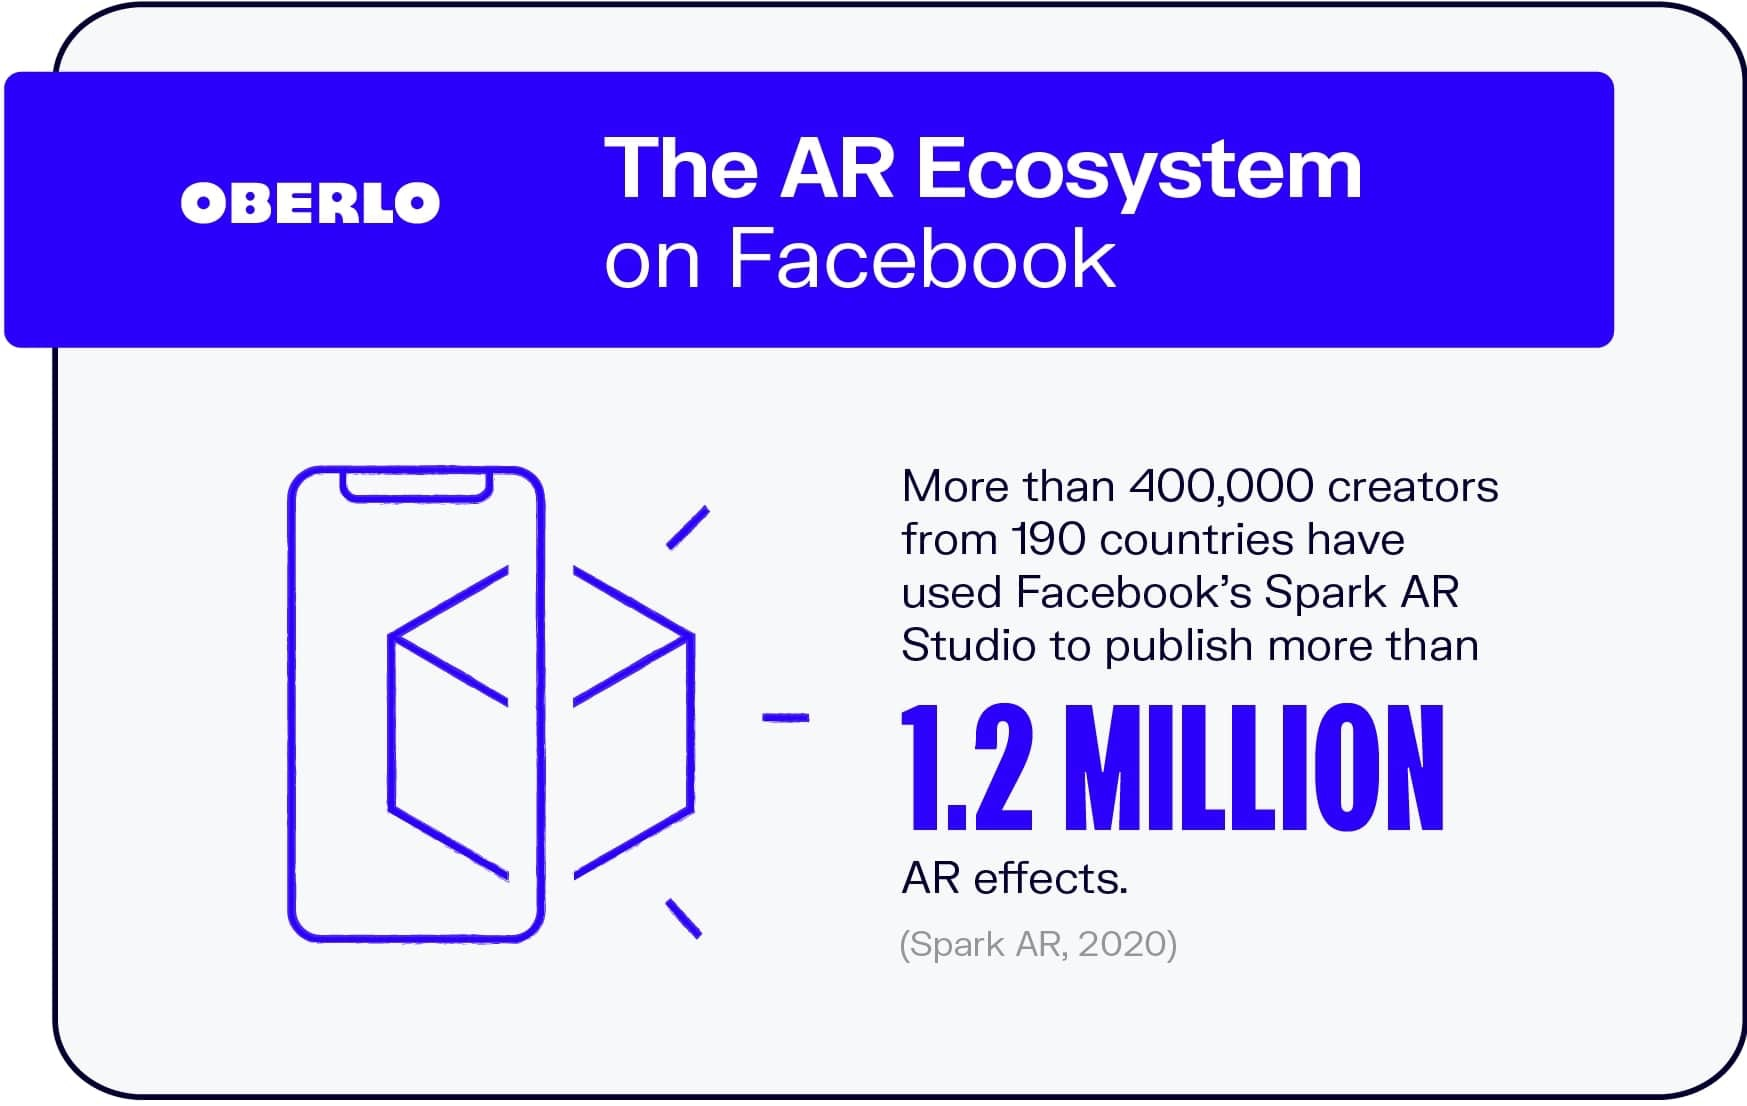 The AR Ecosystem on Facebook